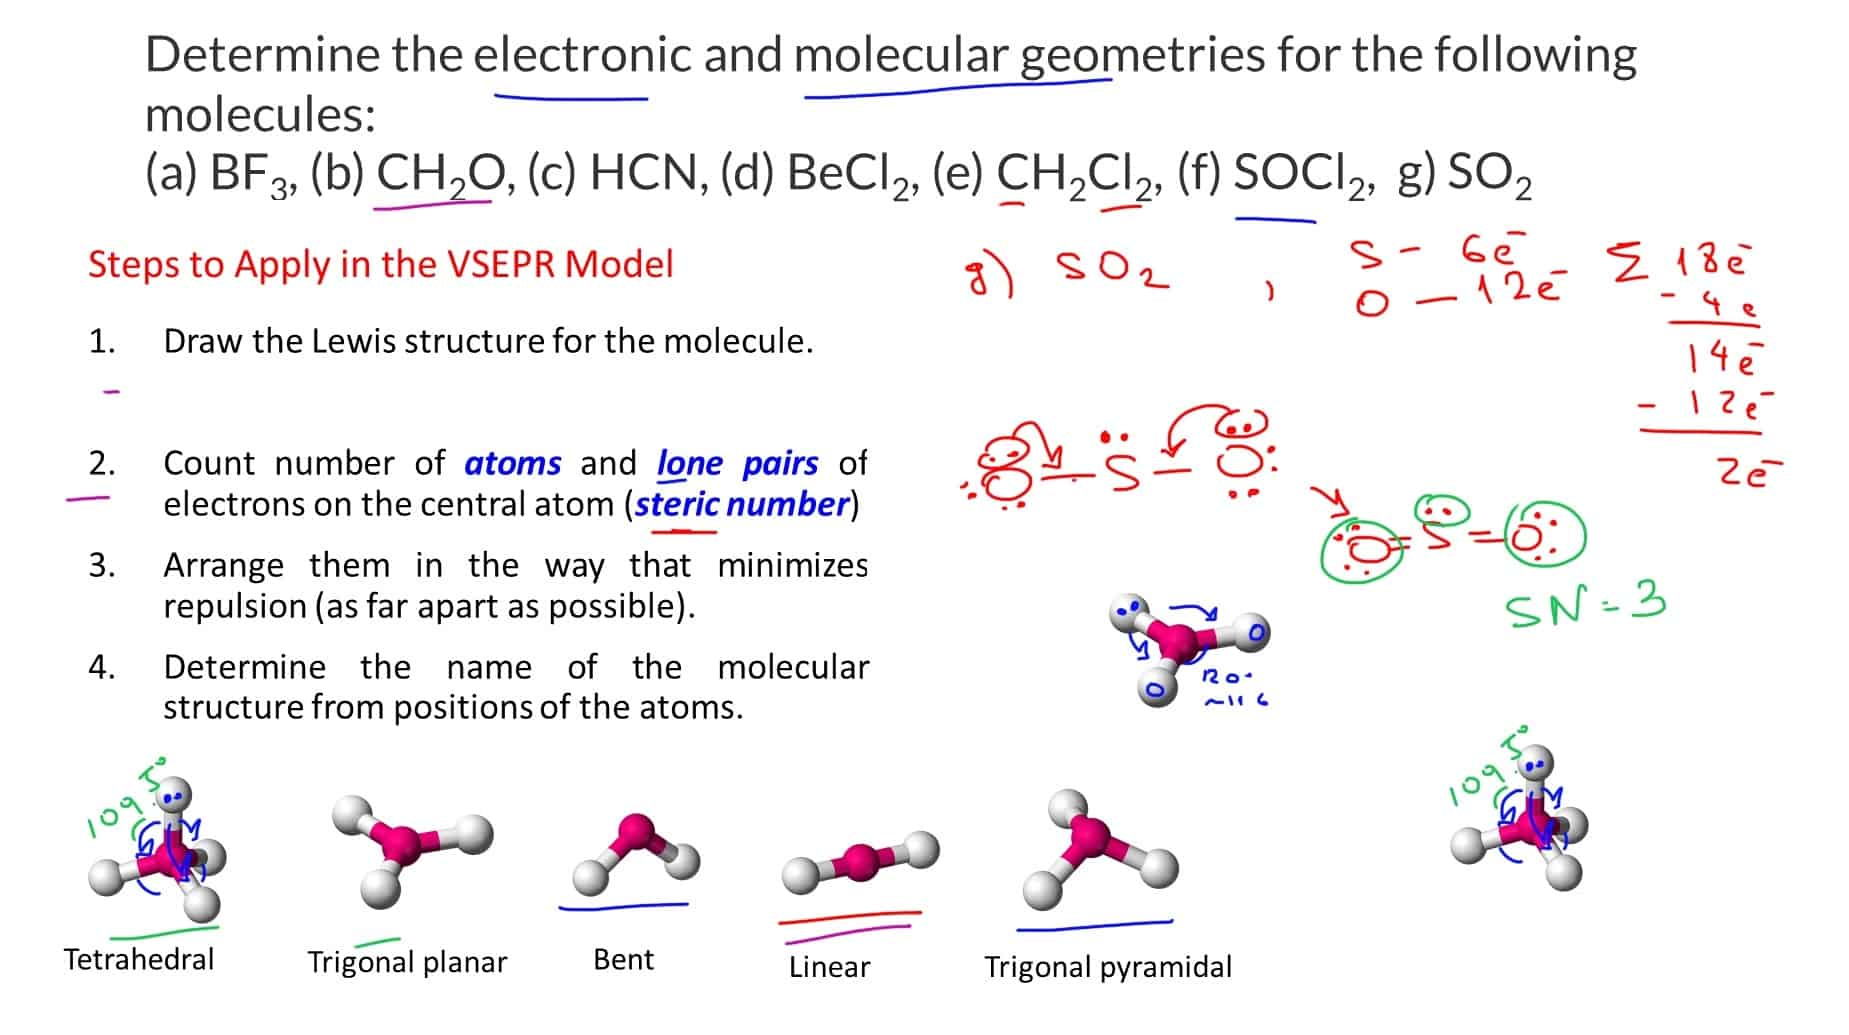 The Vsepr Theory To Predict The Electronic And Molecular Geometry